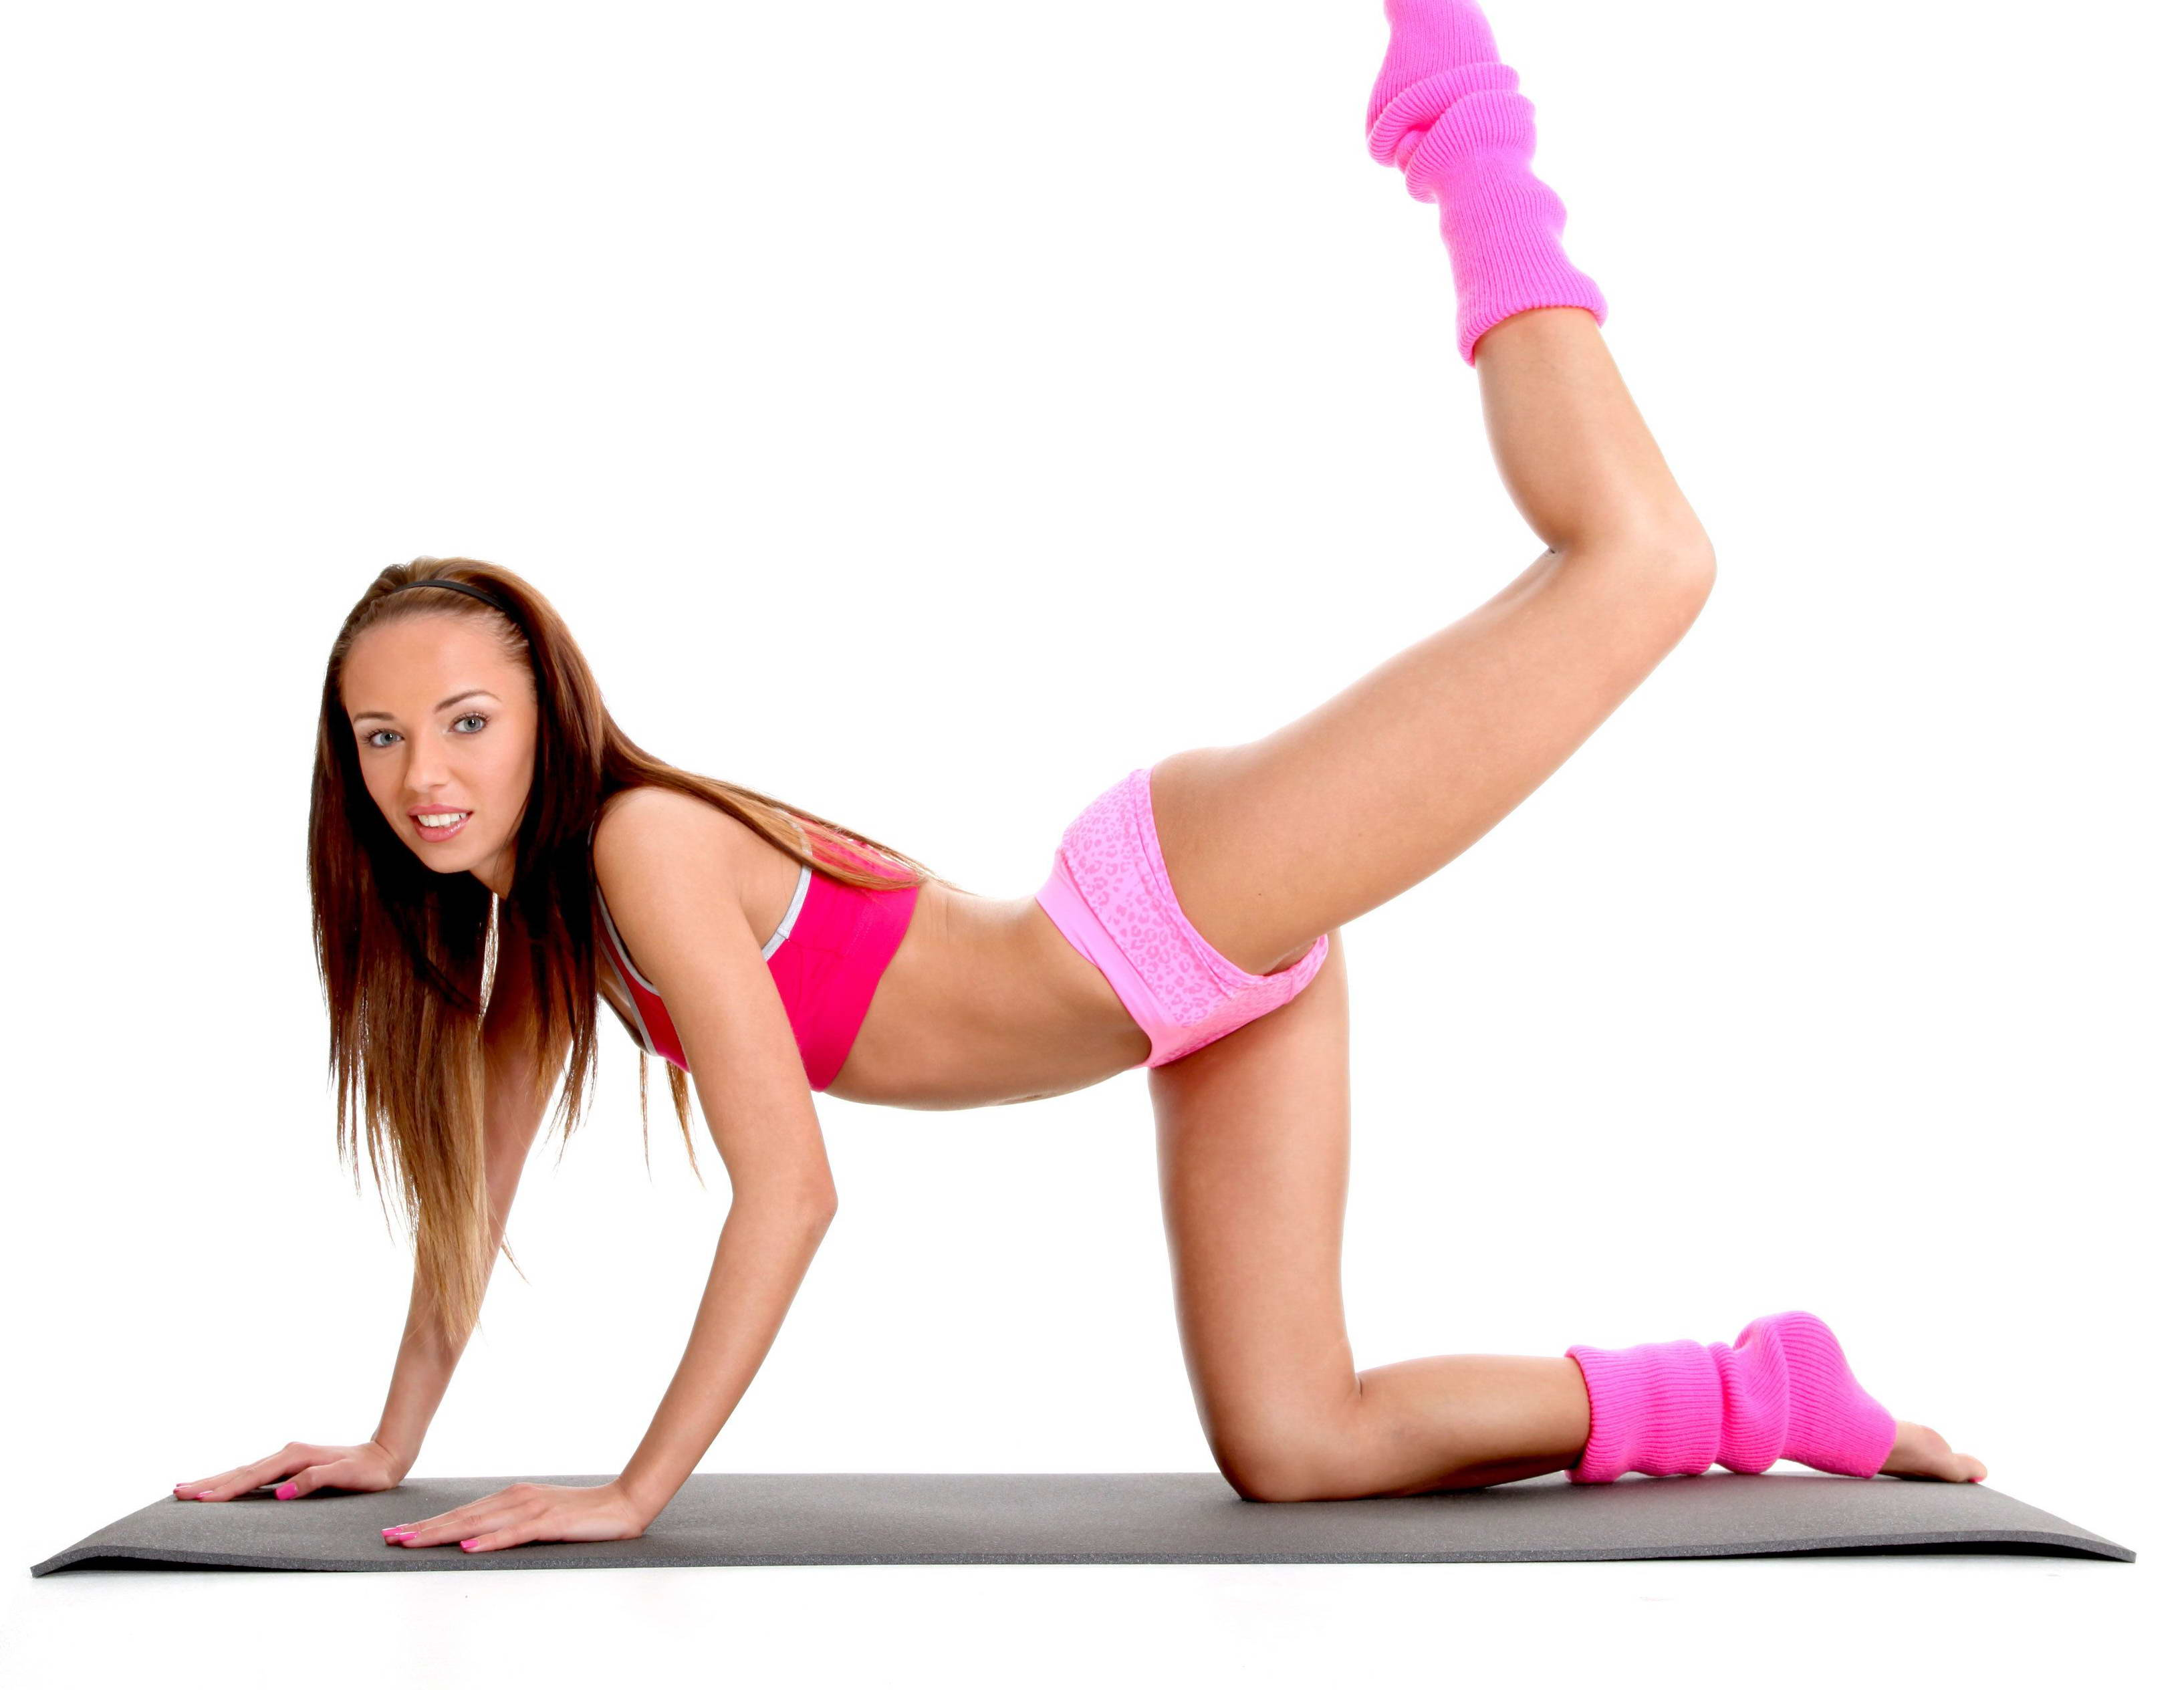 London escorts - sexy yoga girl